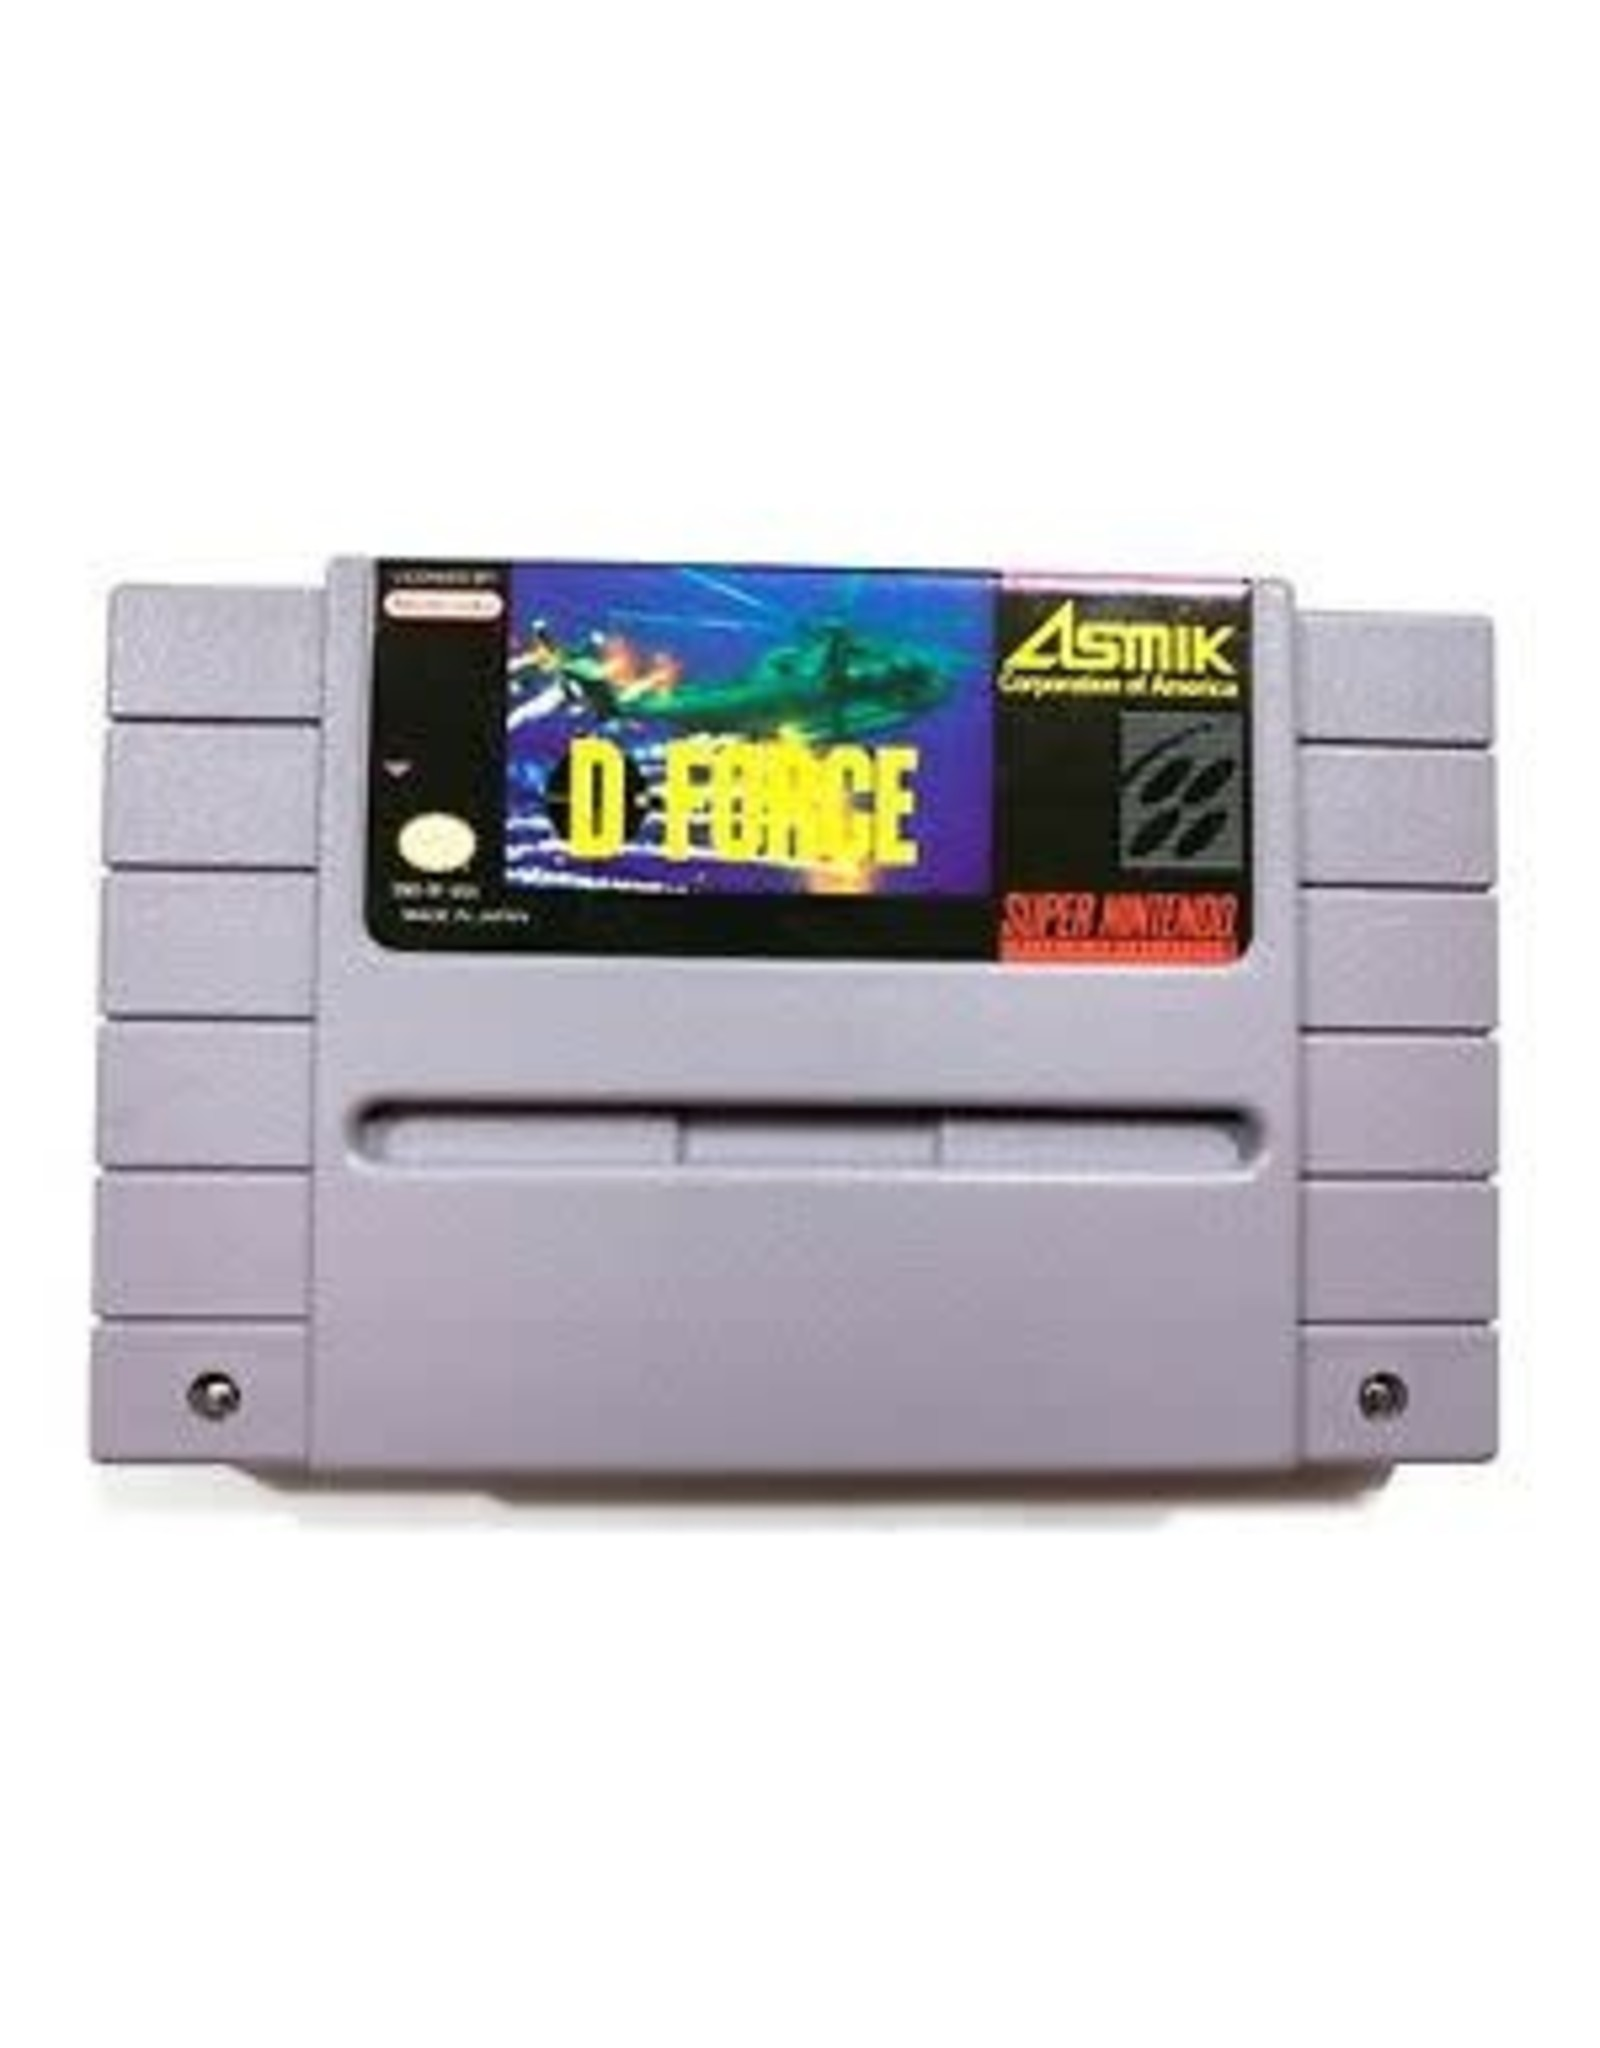 D-Force (SNES)